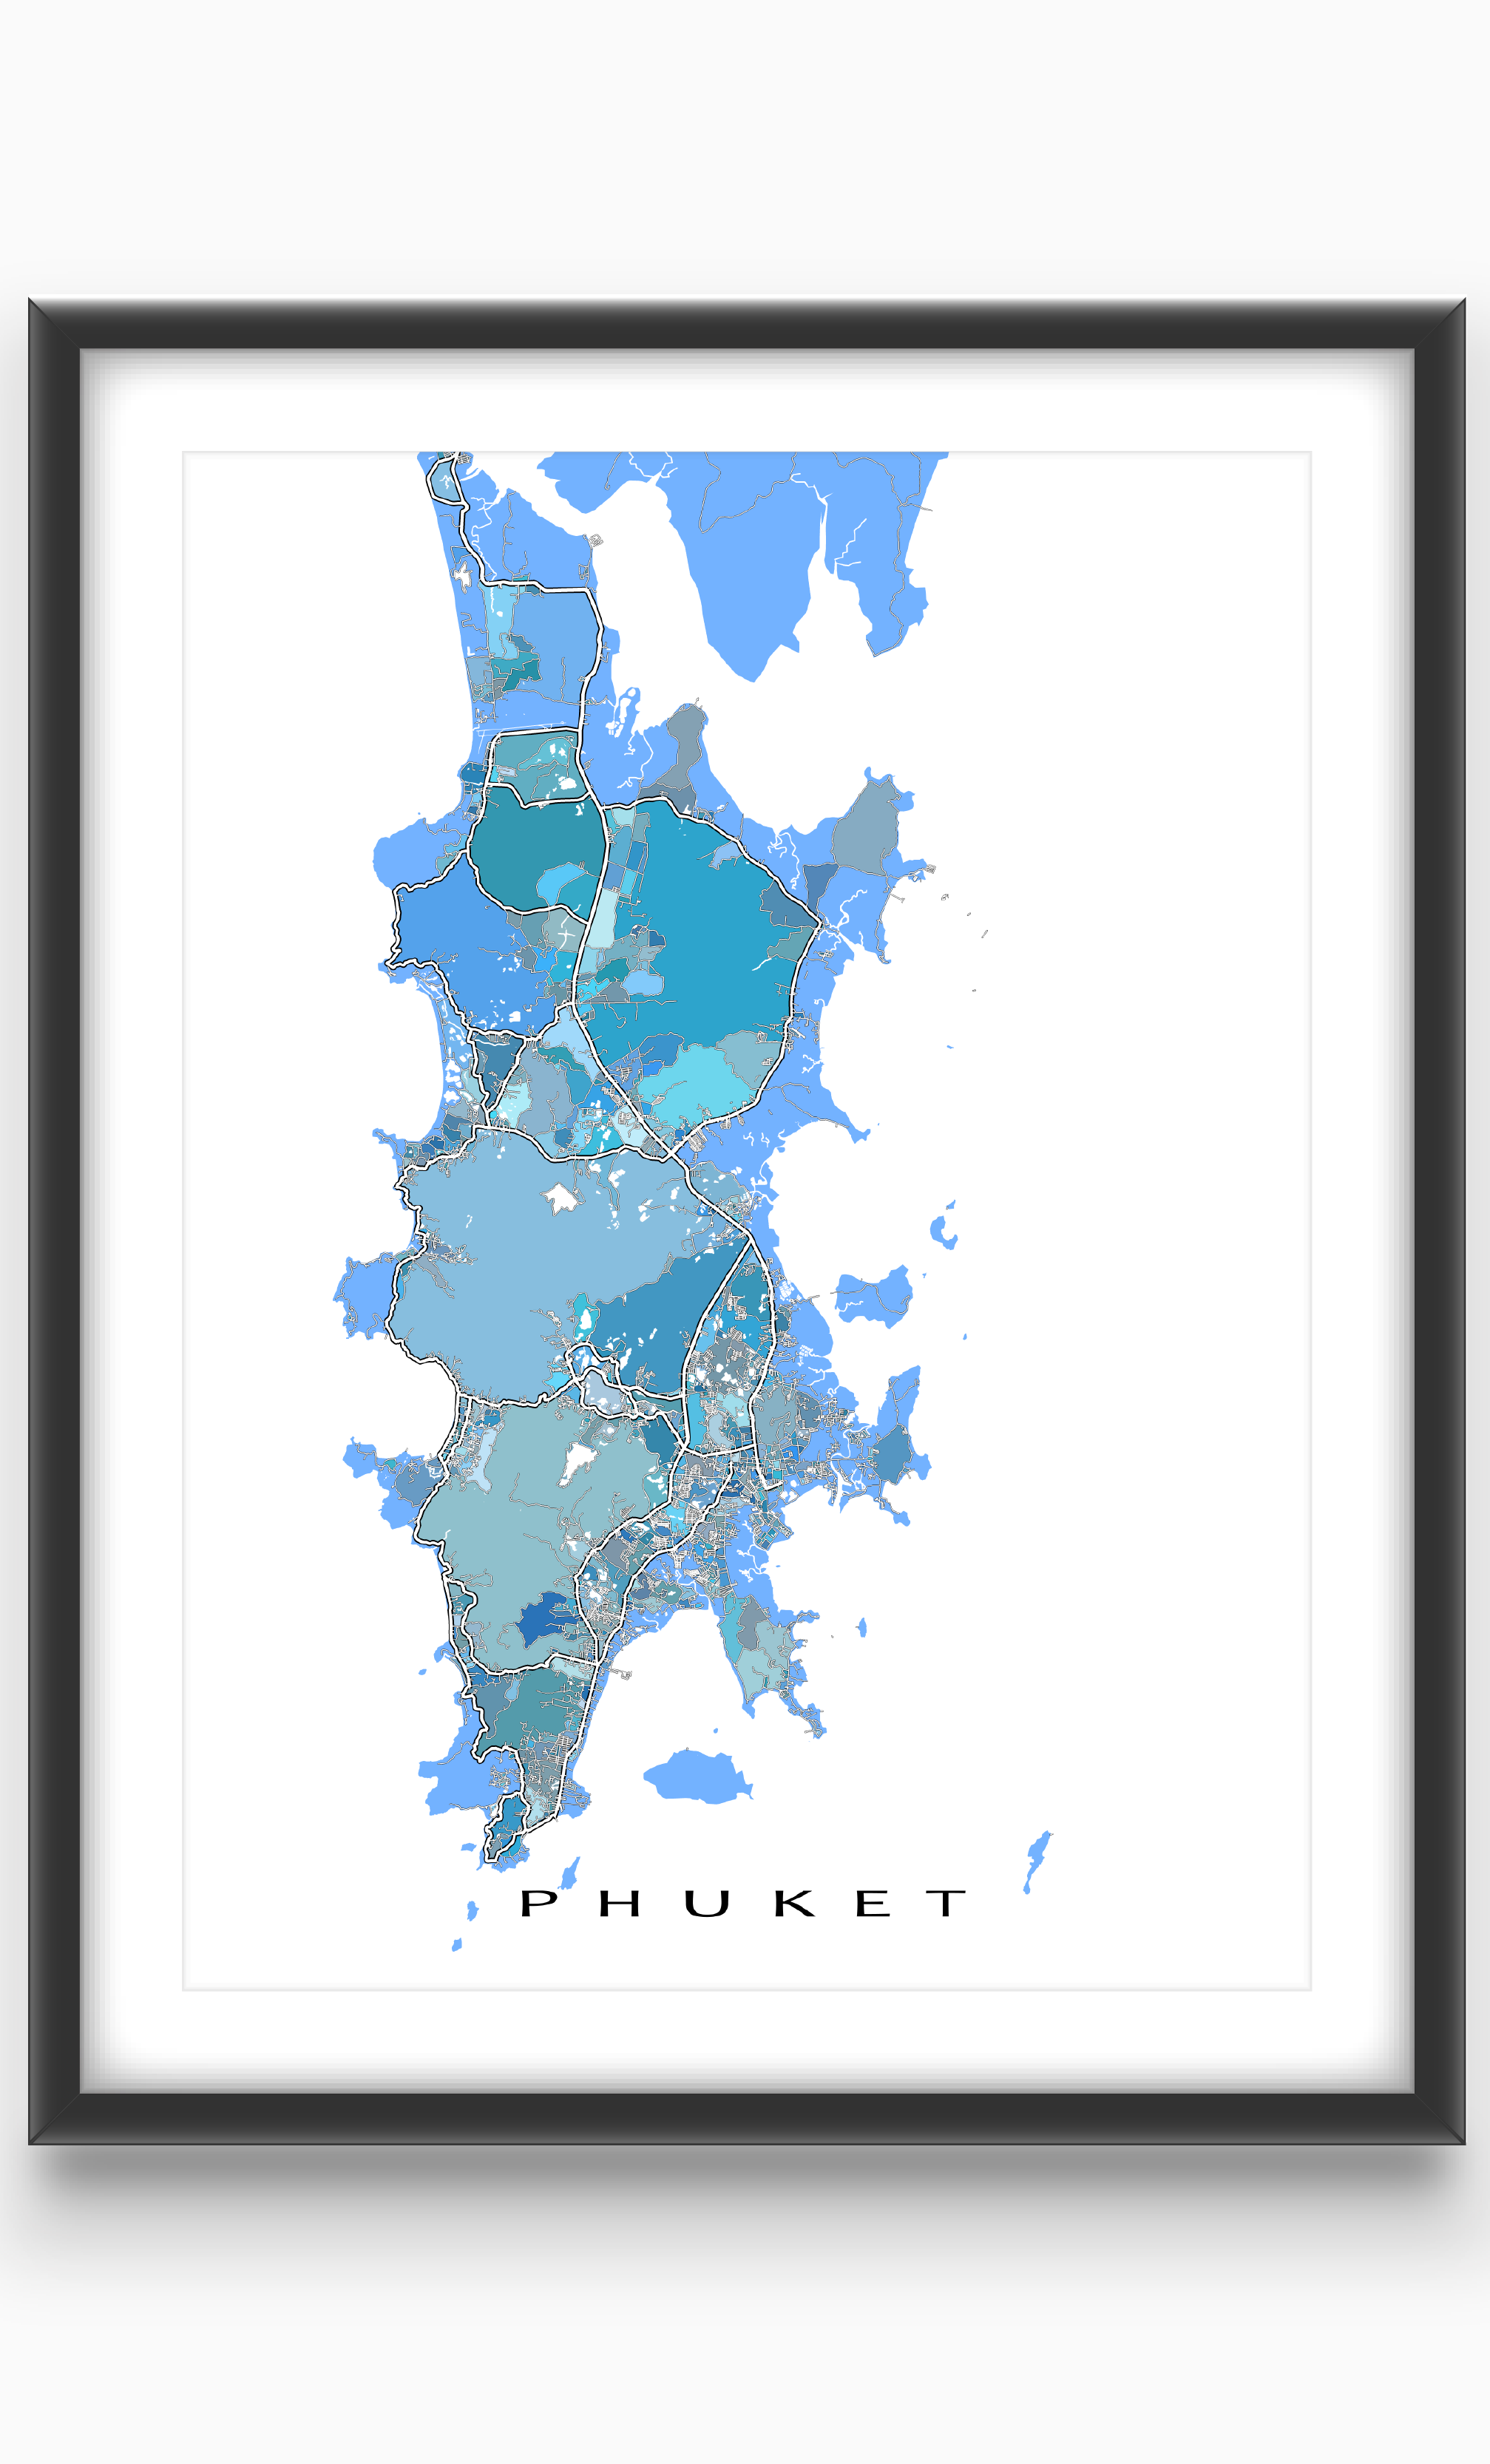 Map Of Just Asia.Phuket Map Phuket Thailand Phuket Island Art Print Asia Travel